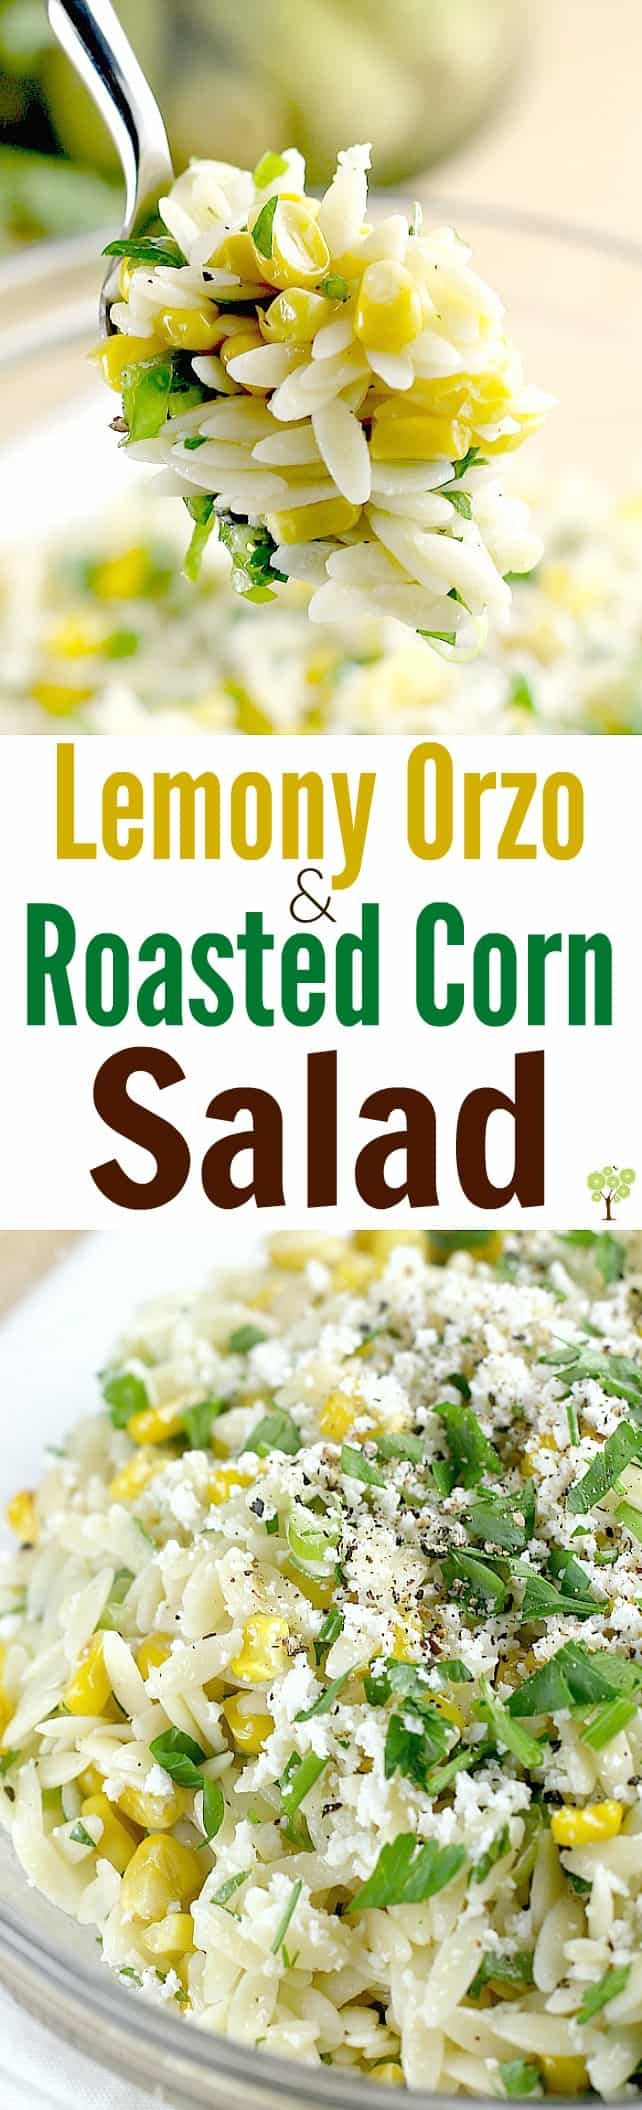 Lemony Orzo and Roasted Corn Salad http://wp.me/p4qC4h-3Fb